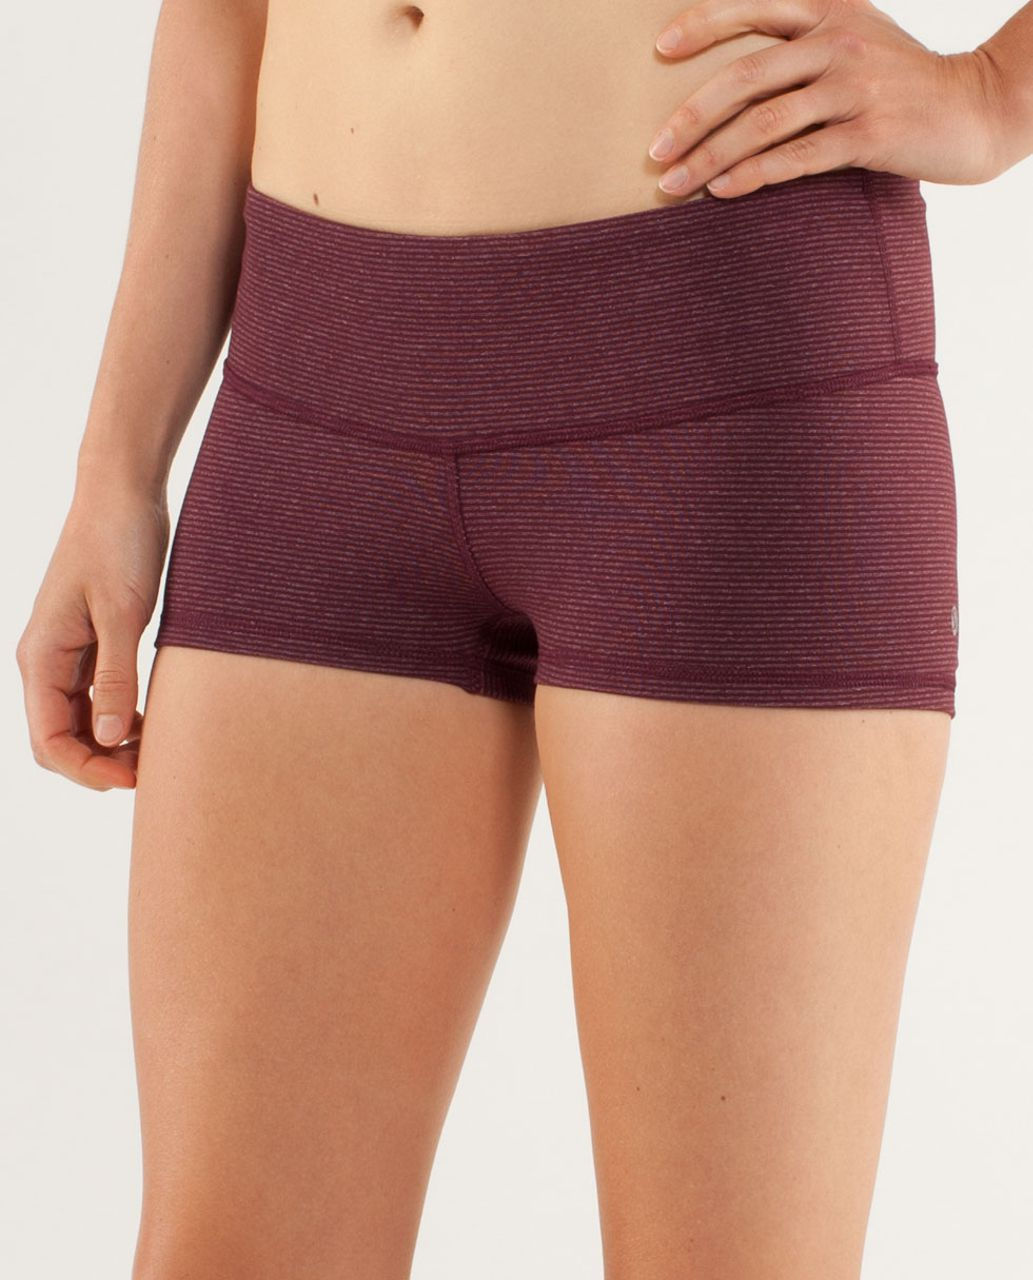 Lululemon Boogie Short - Tonka Stripe Bordeaux Drama / Heathered Bordeaux Drama